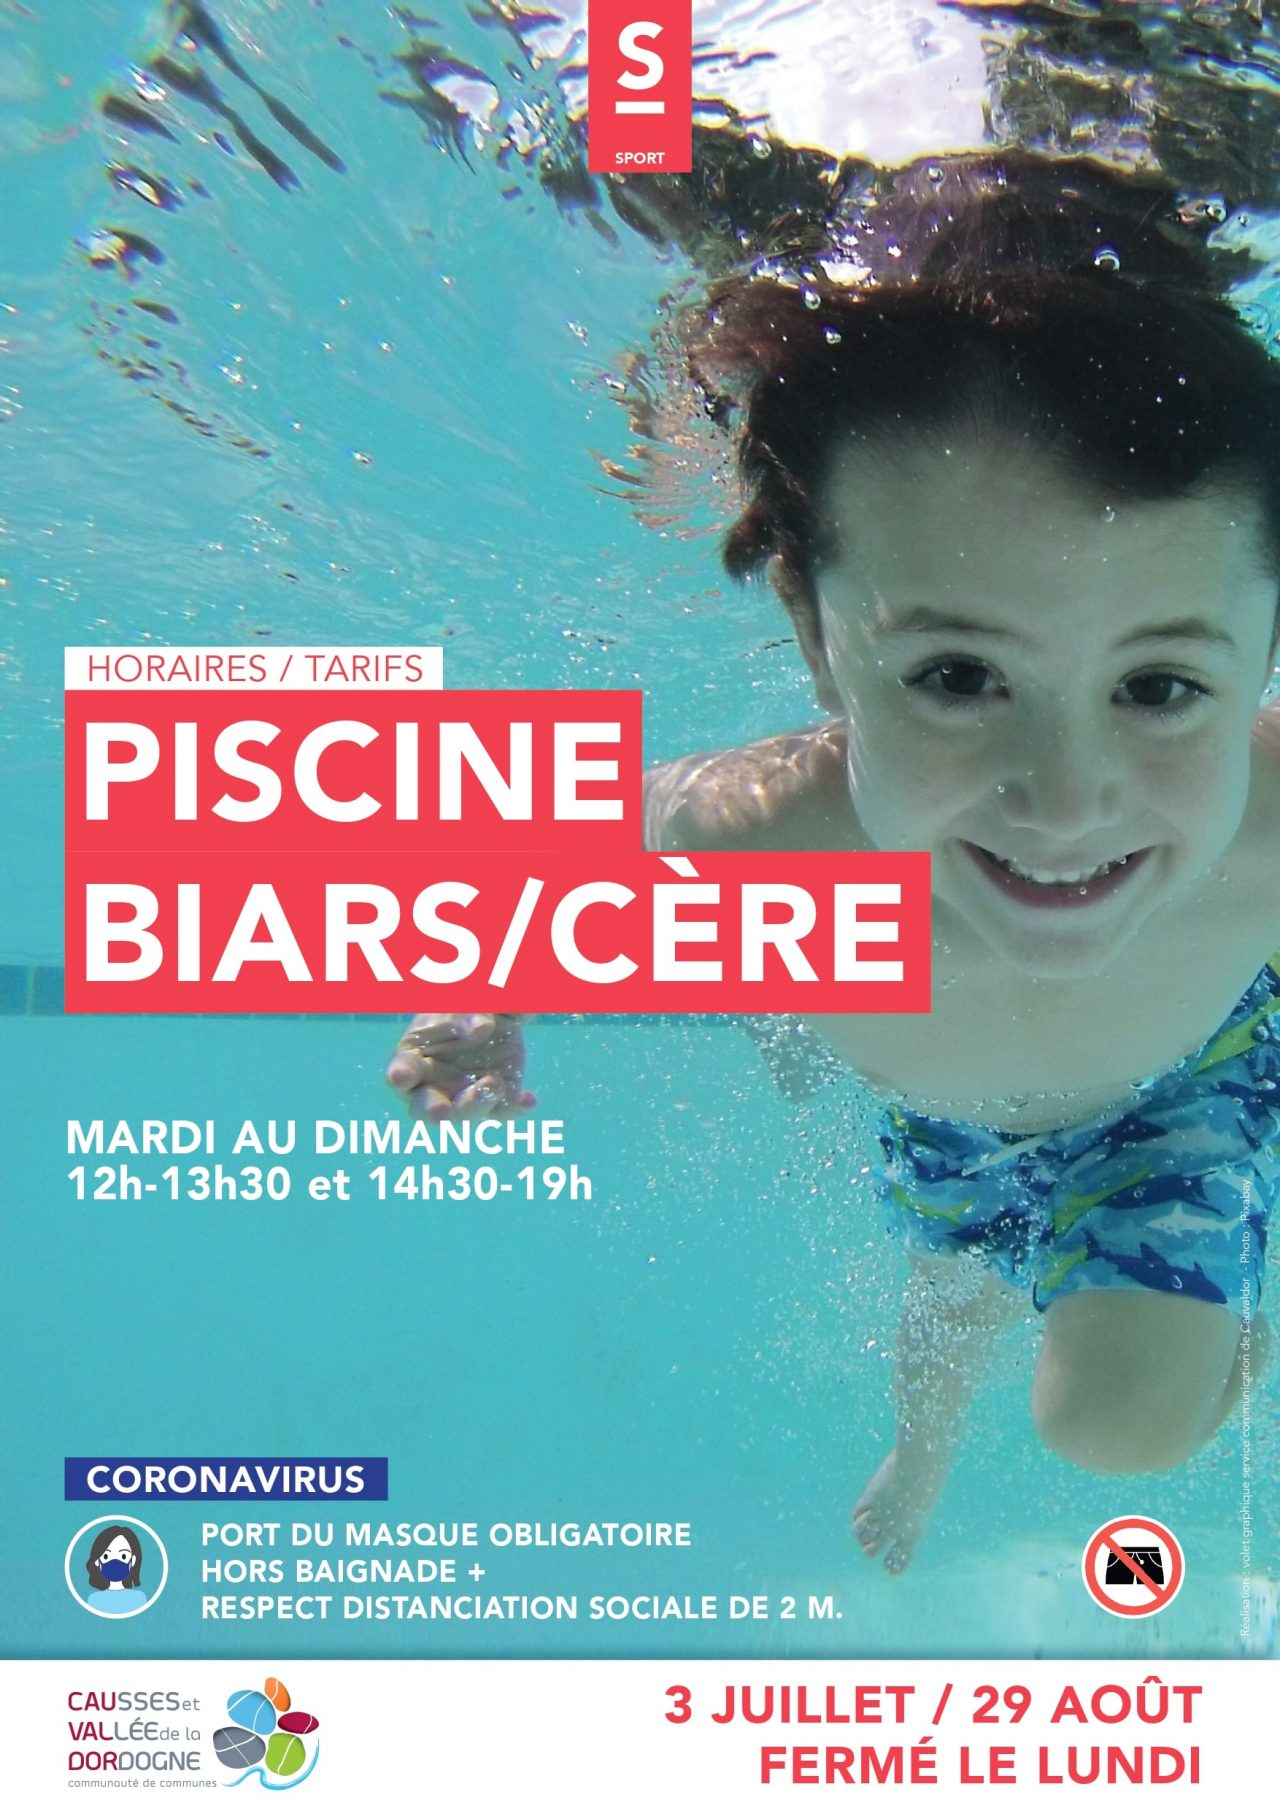 AFFICHES-PISCINES-horaires-BIARS_page-0001-min-1280x1811.jpg